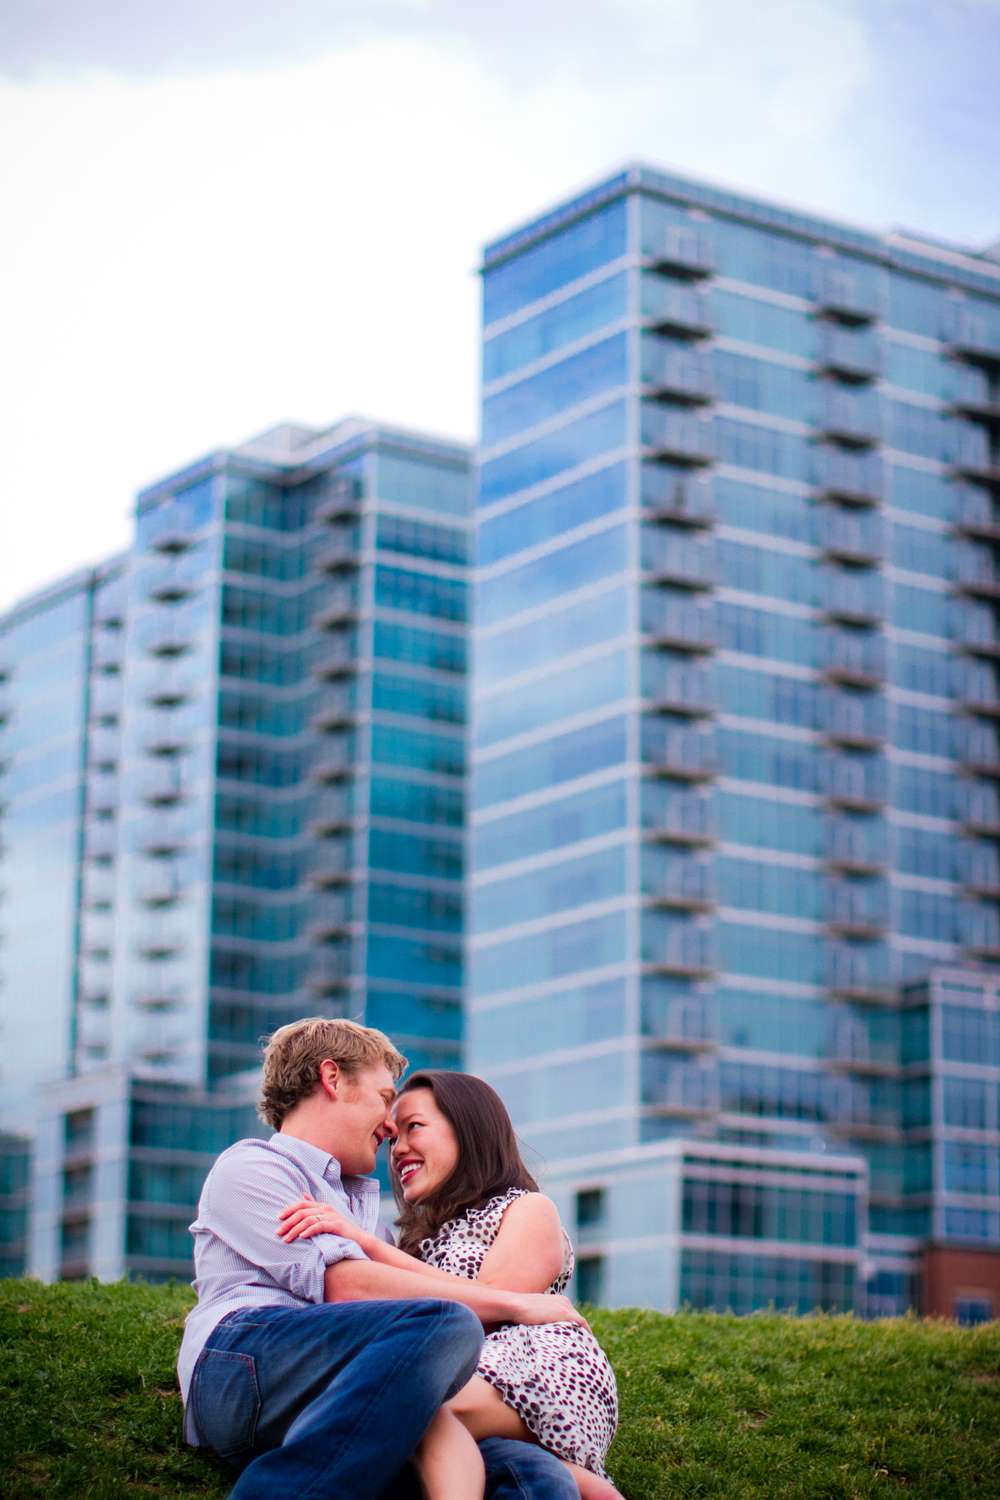 LoDo_Denver_Engagement_Photos_002.JPG